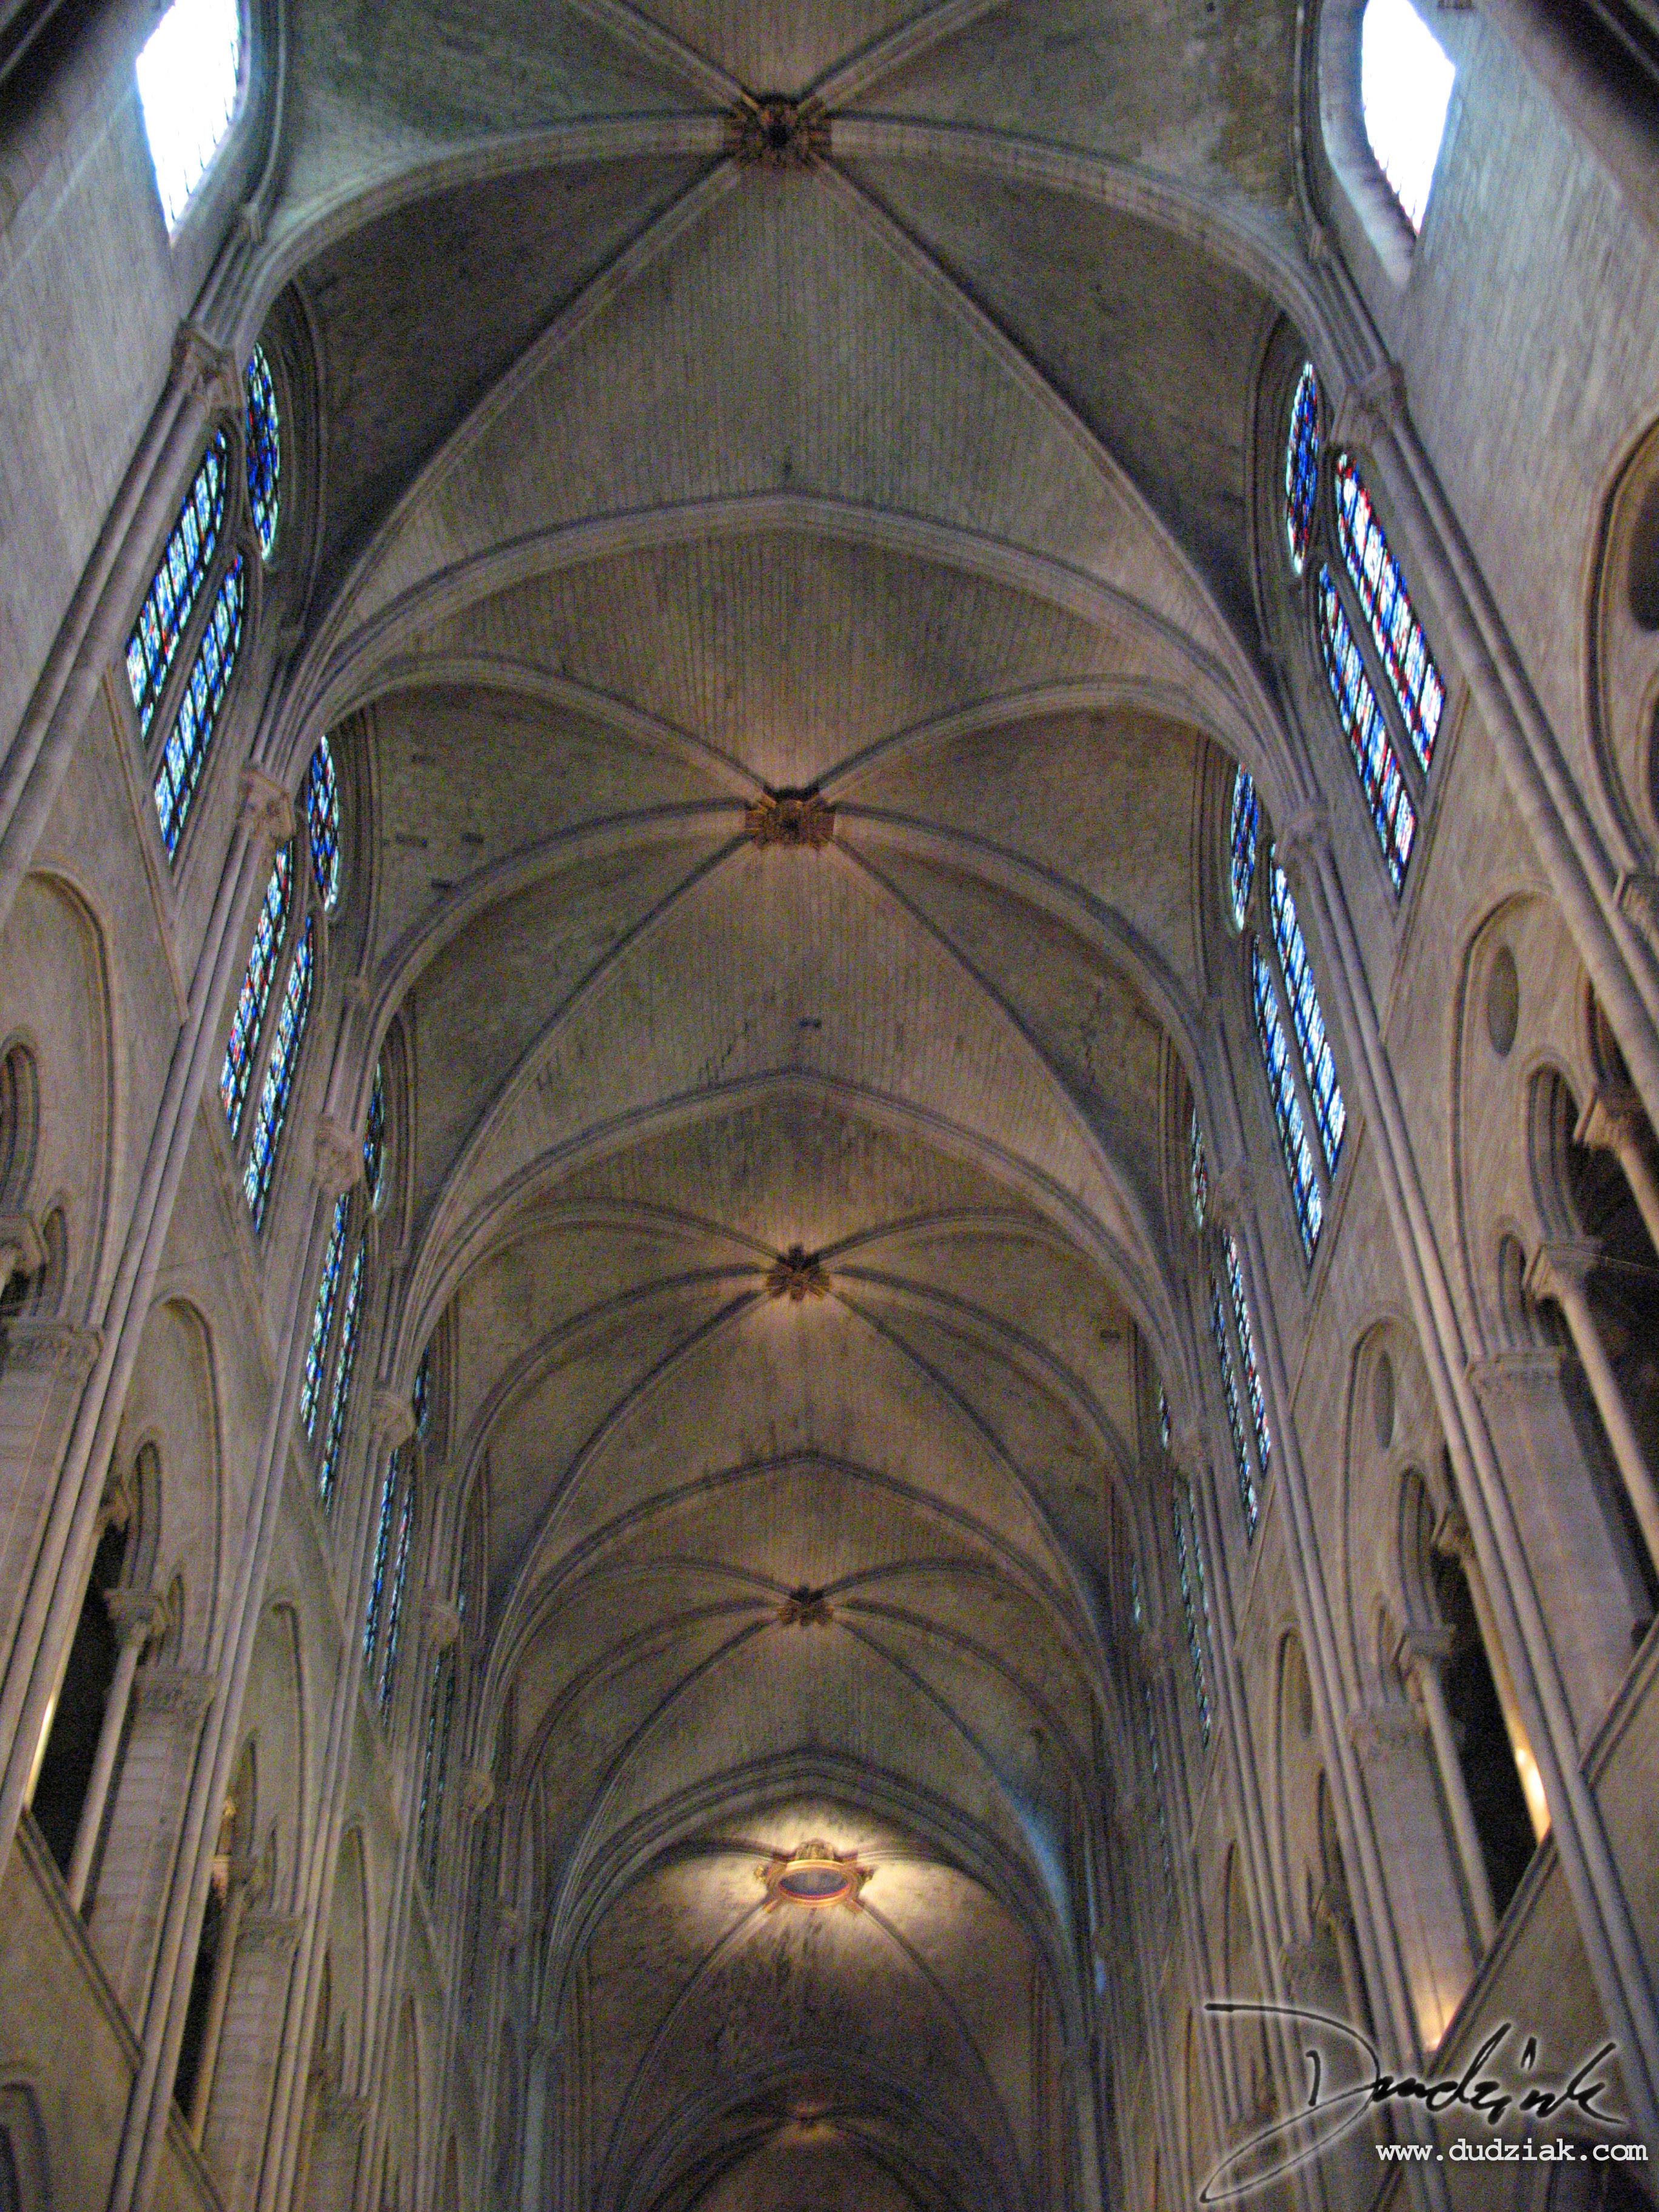 Picture of gothic arches in the Notre Dame Cahtedral in Paris.